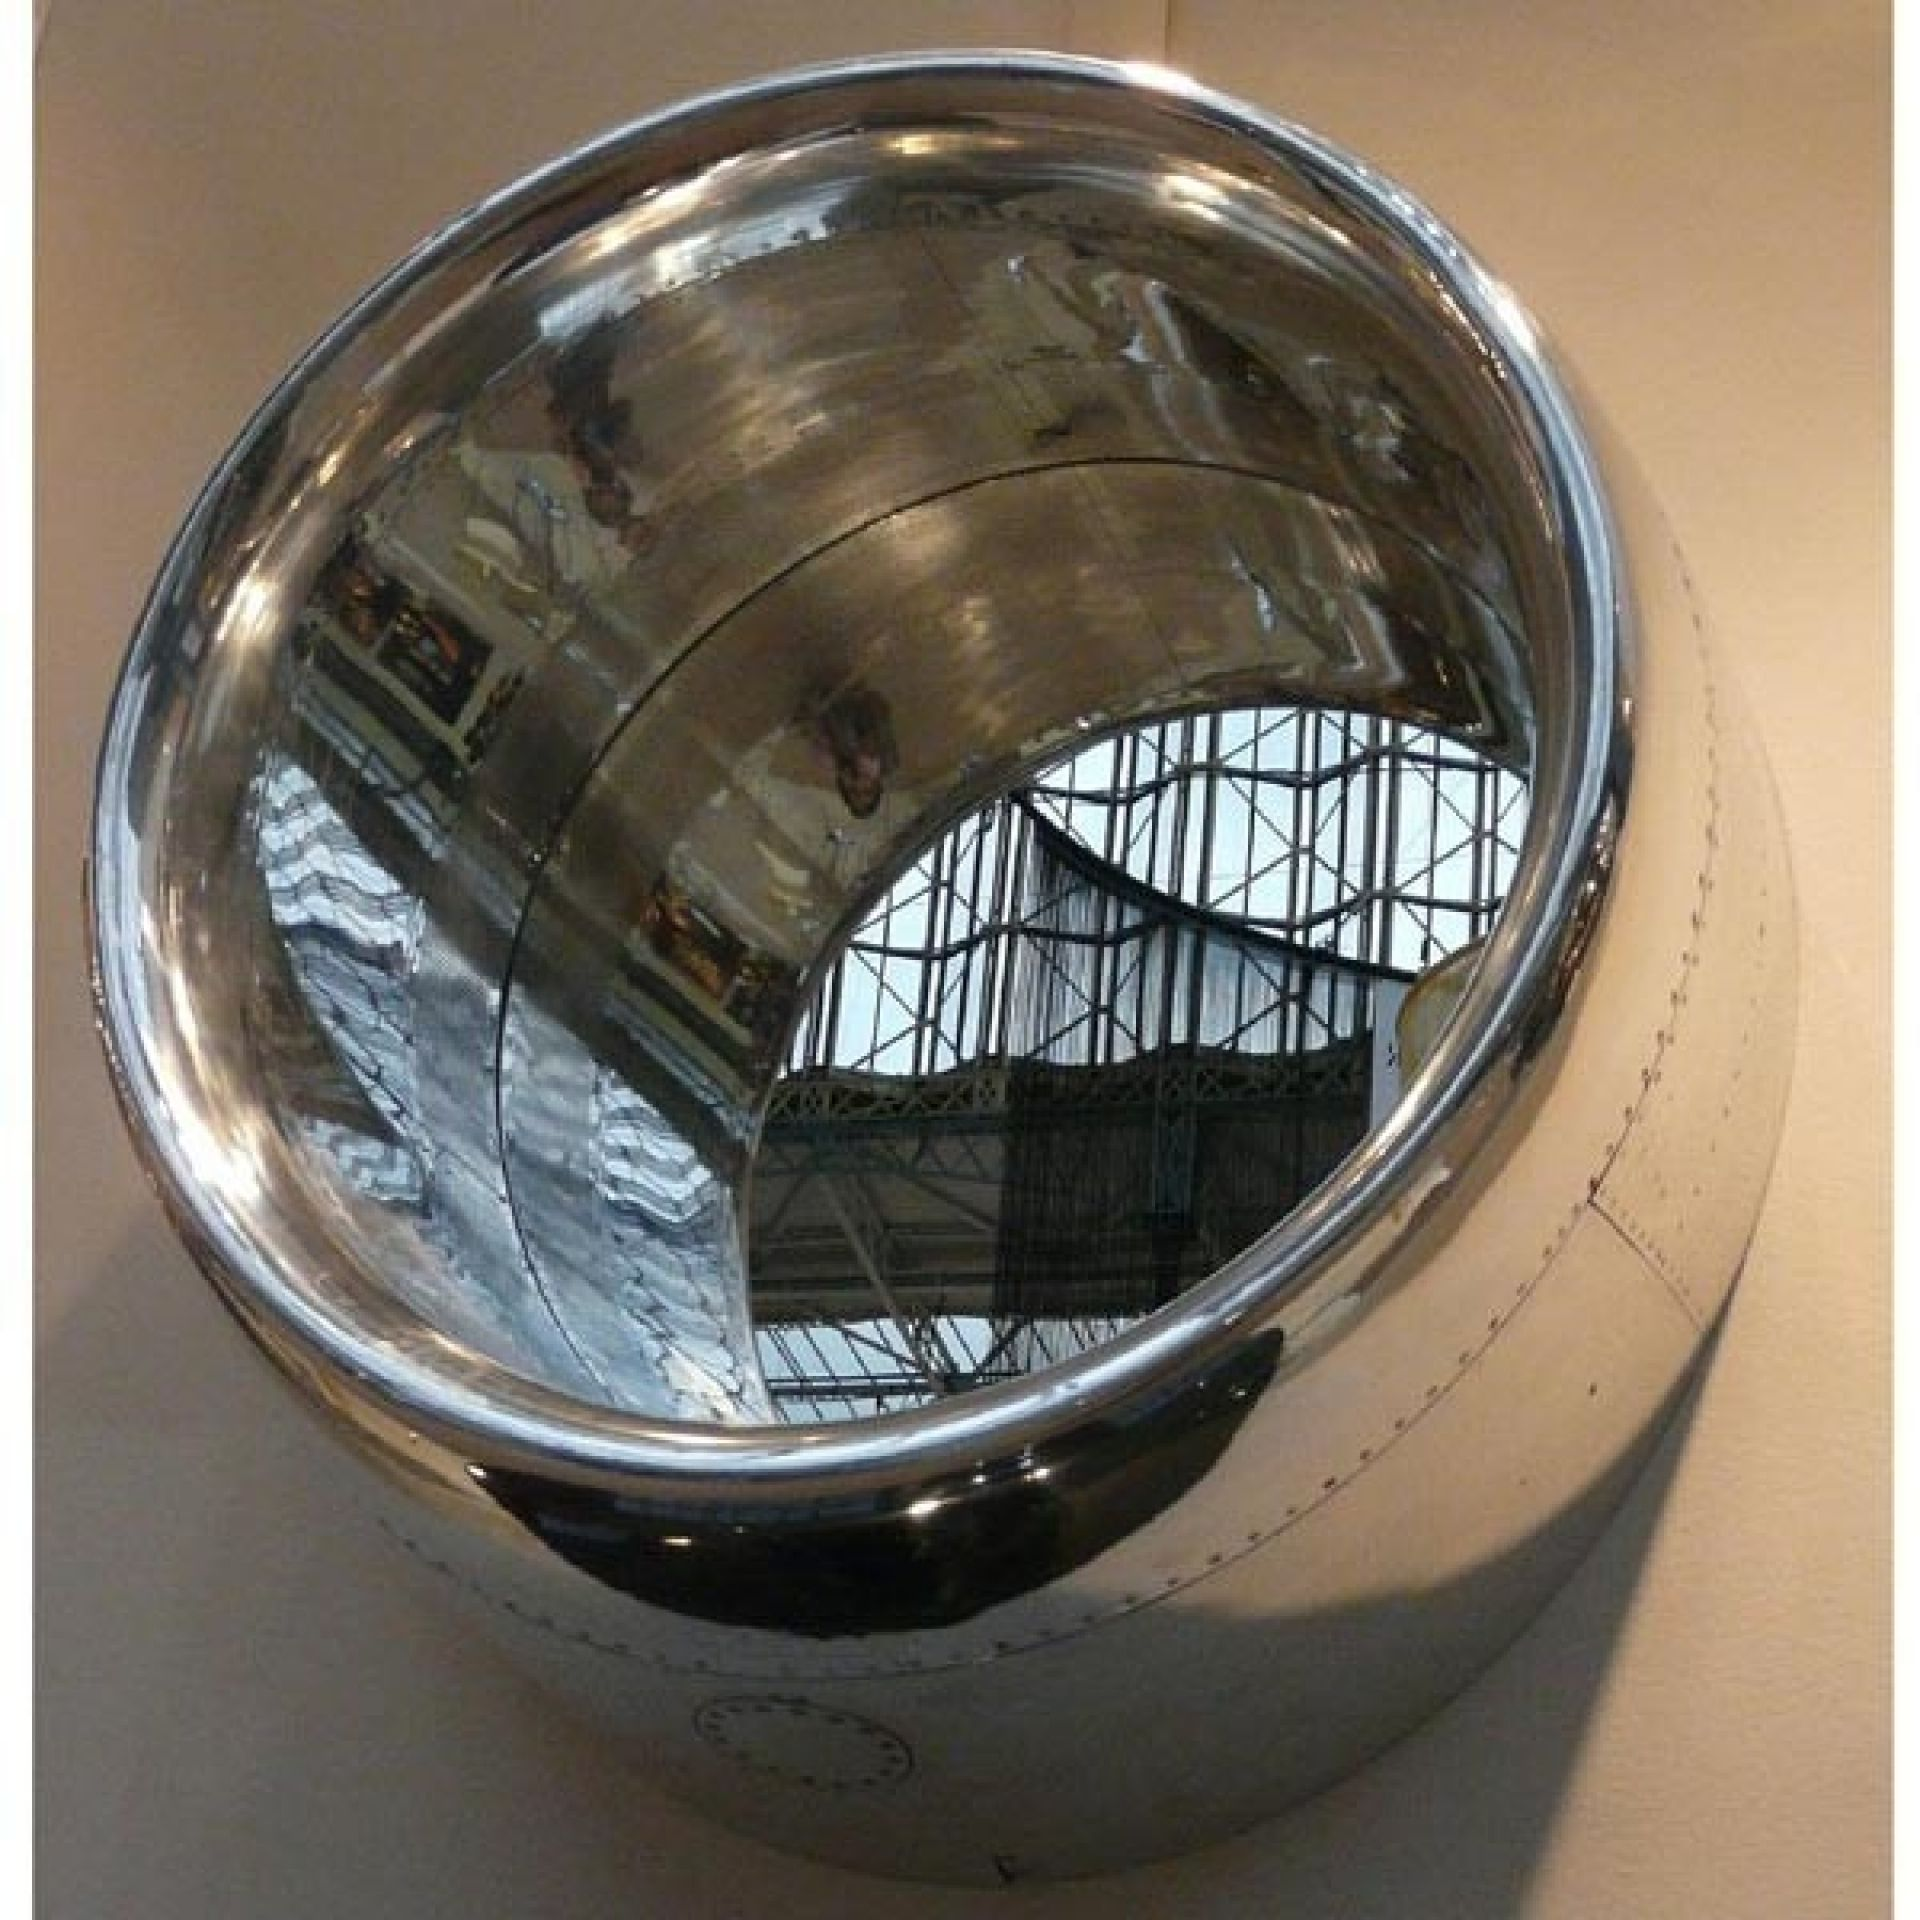 MIRROR ALUMINUM PART OF A REACTOR COVER 13-B 727